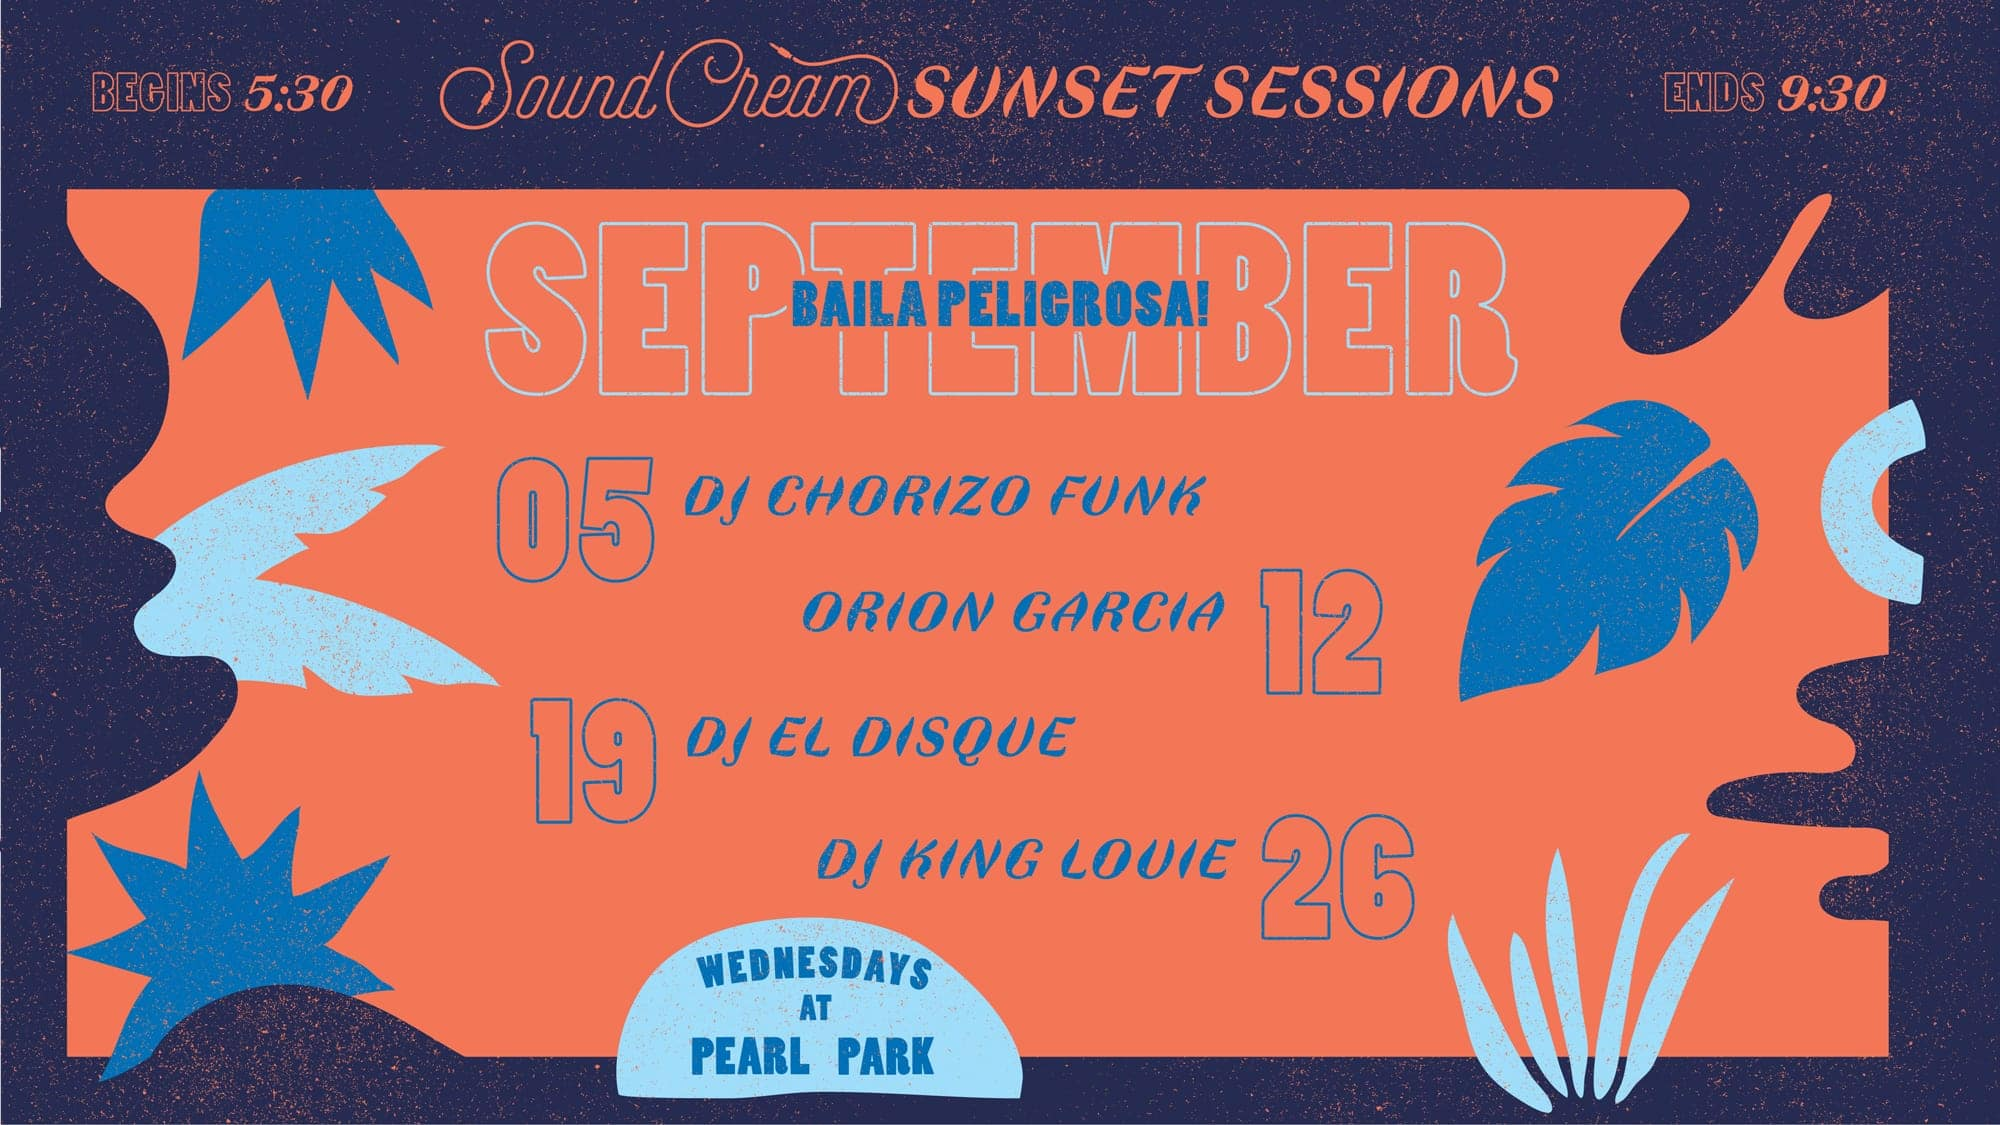 soundcream-airstream-september-sunset-sessions-poster